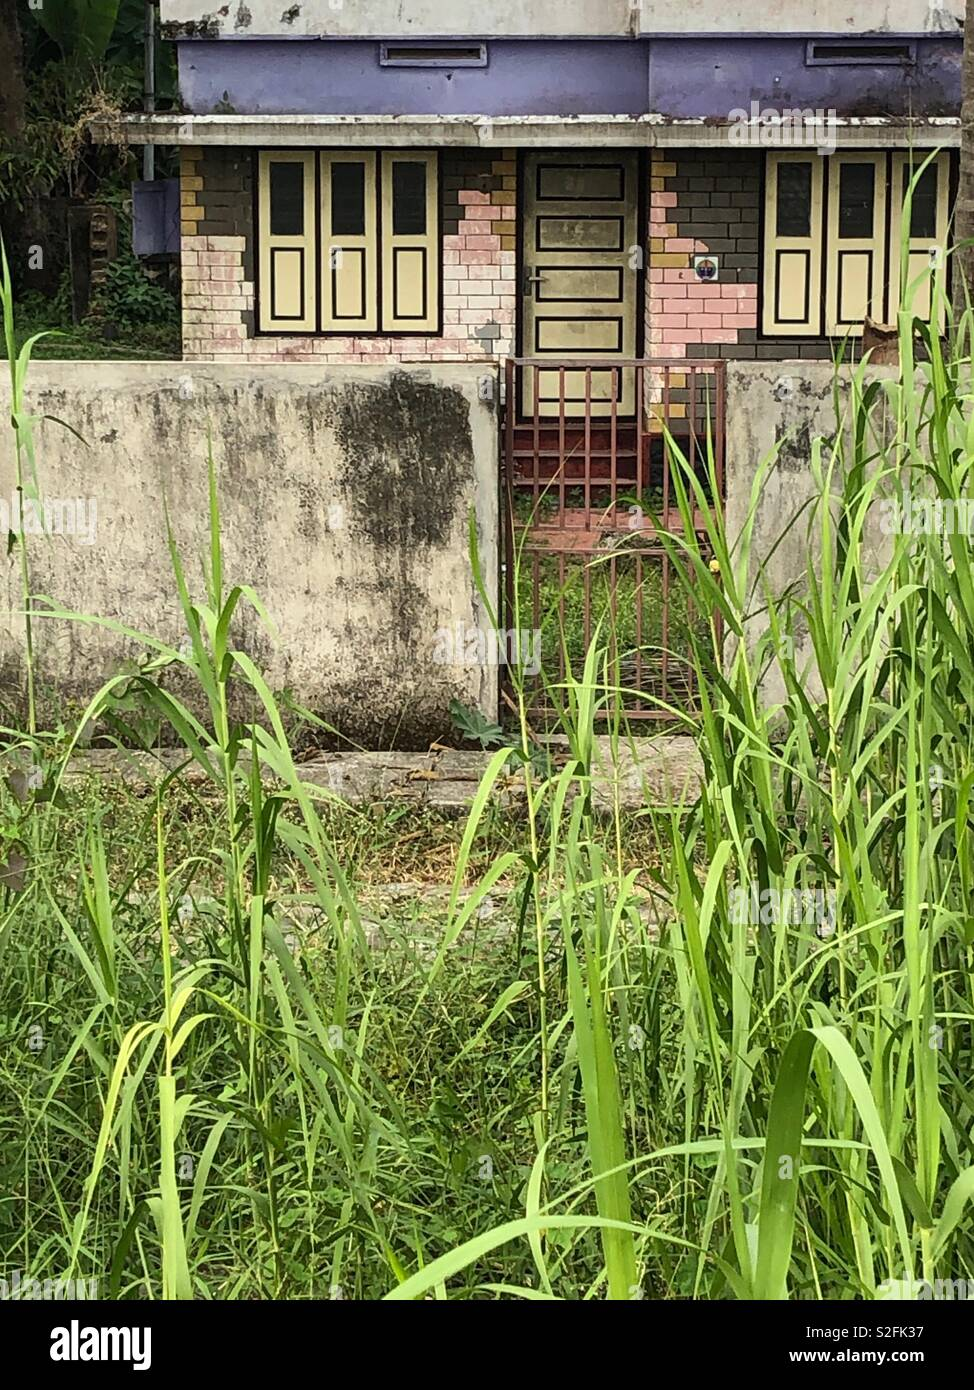 Geometrical house, a gray wall and high grass in the front - Stock Image